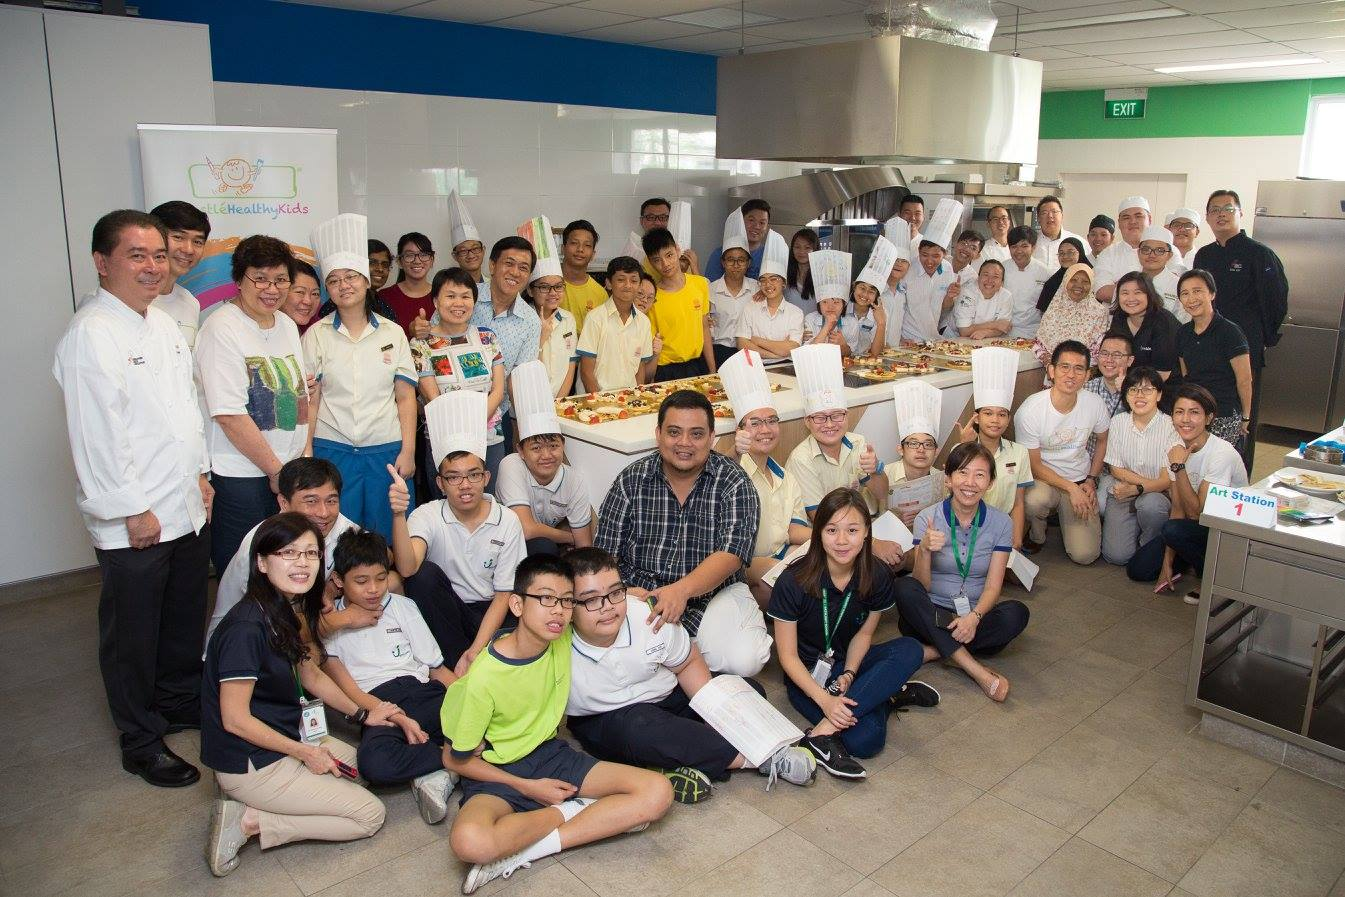 International Chefs Day Group Photo